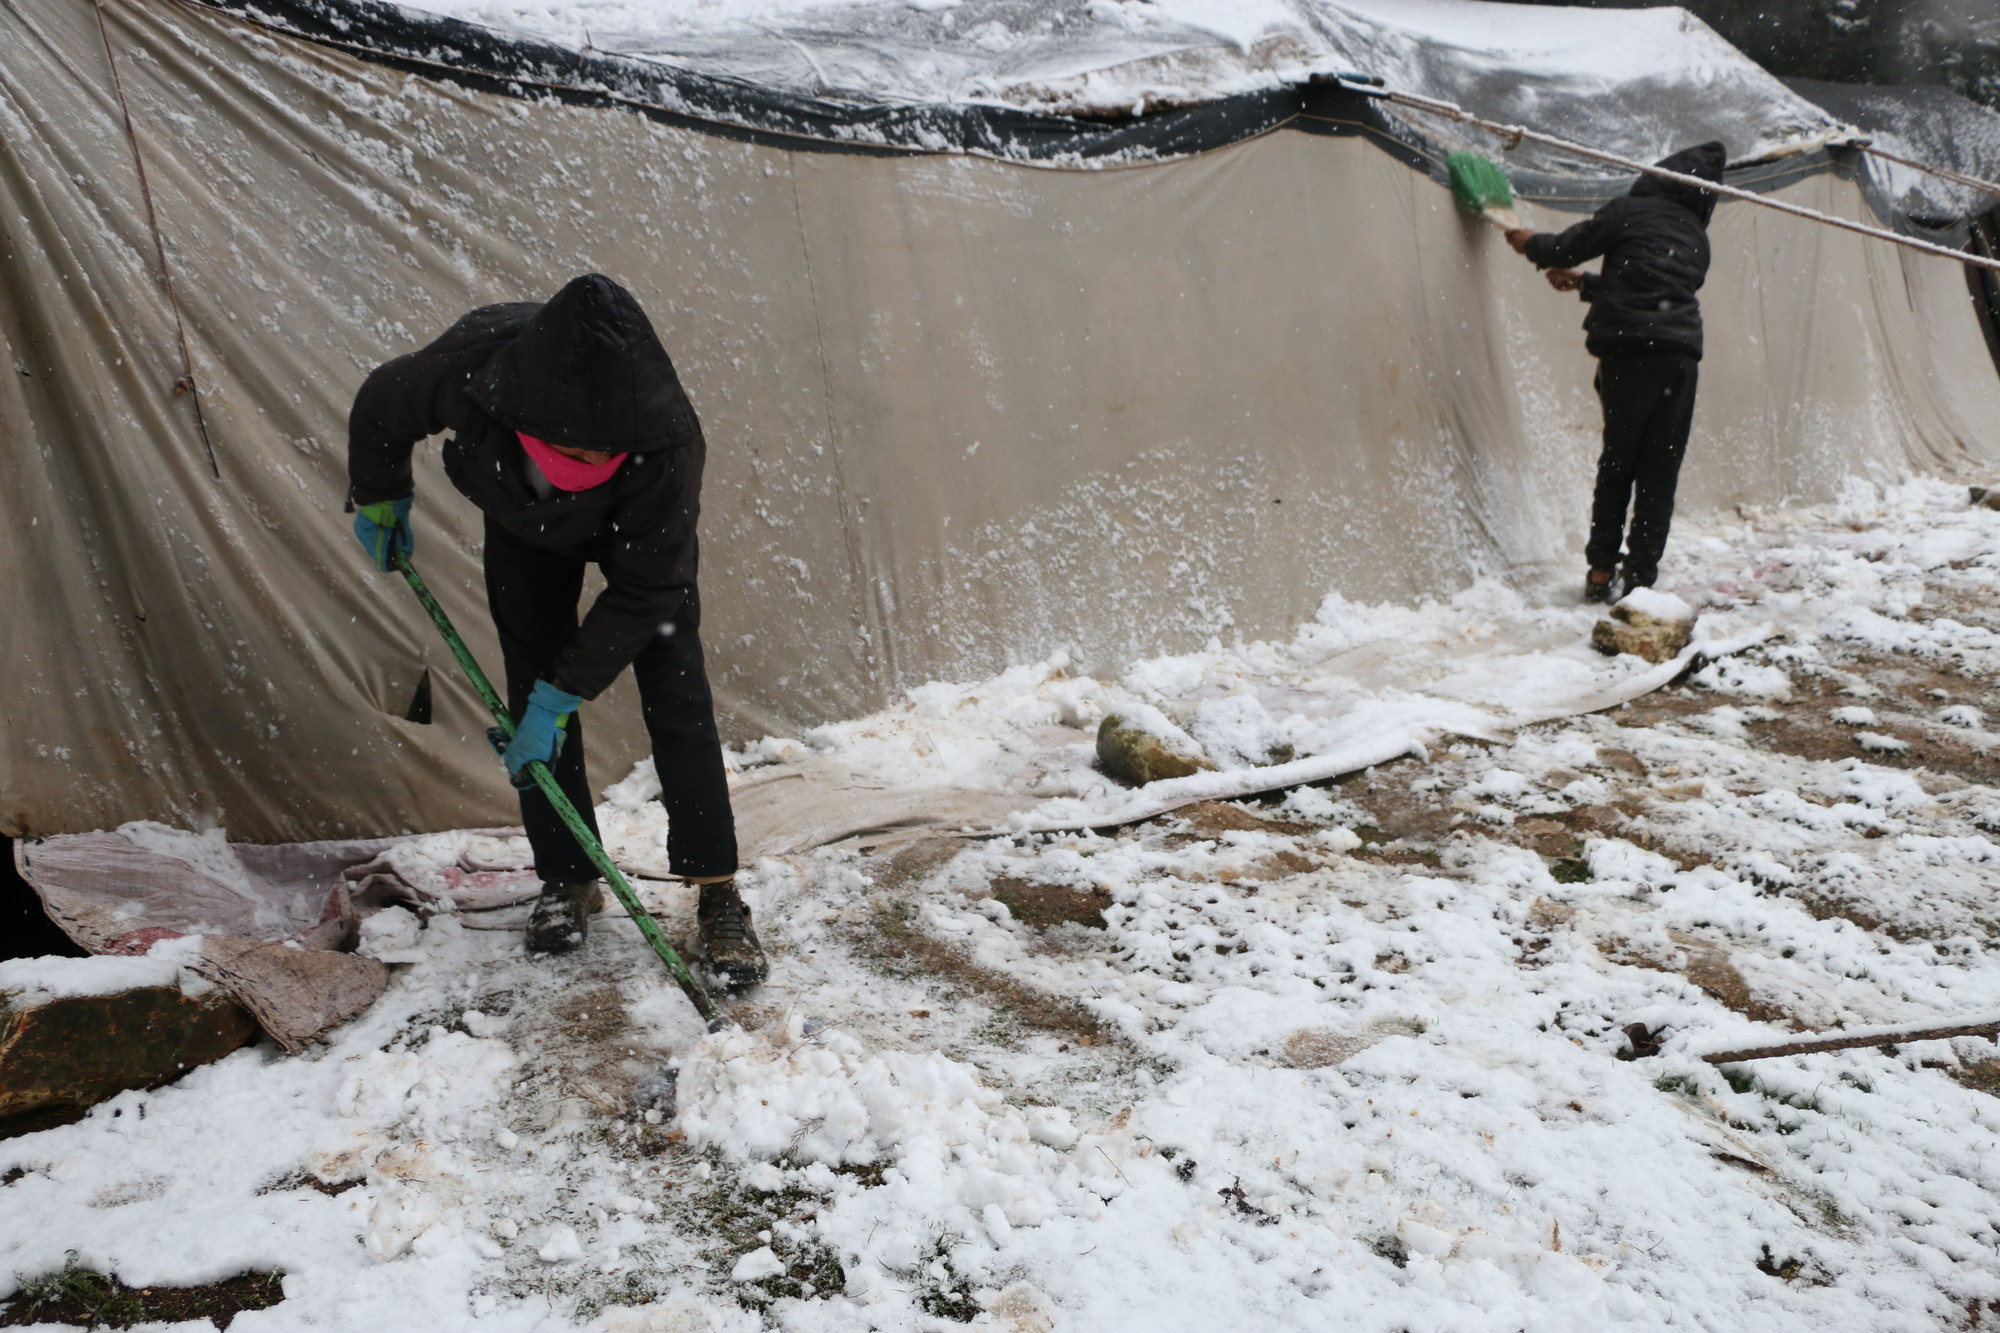 Two children shovel snow outside a tent in a camp.